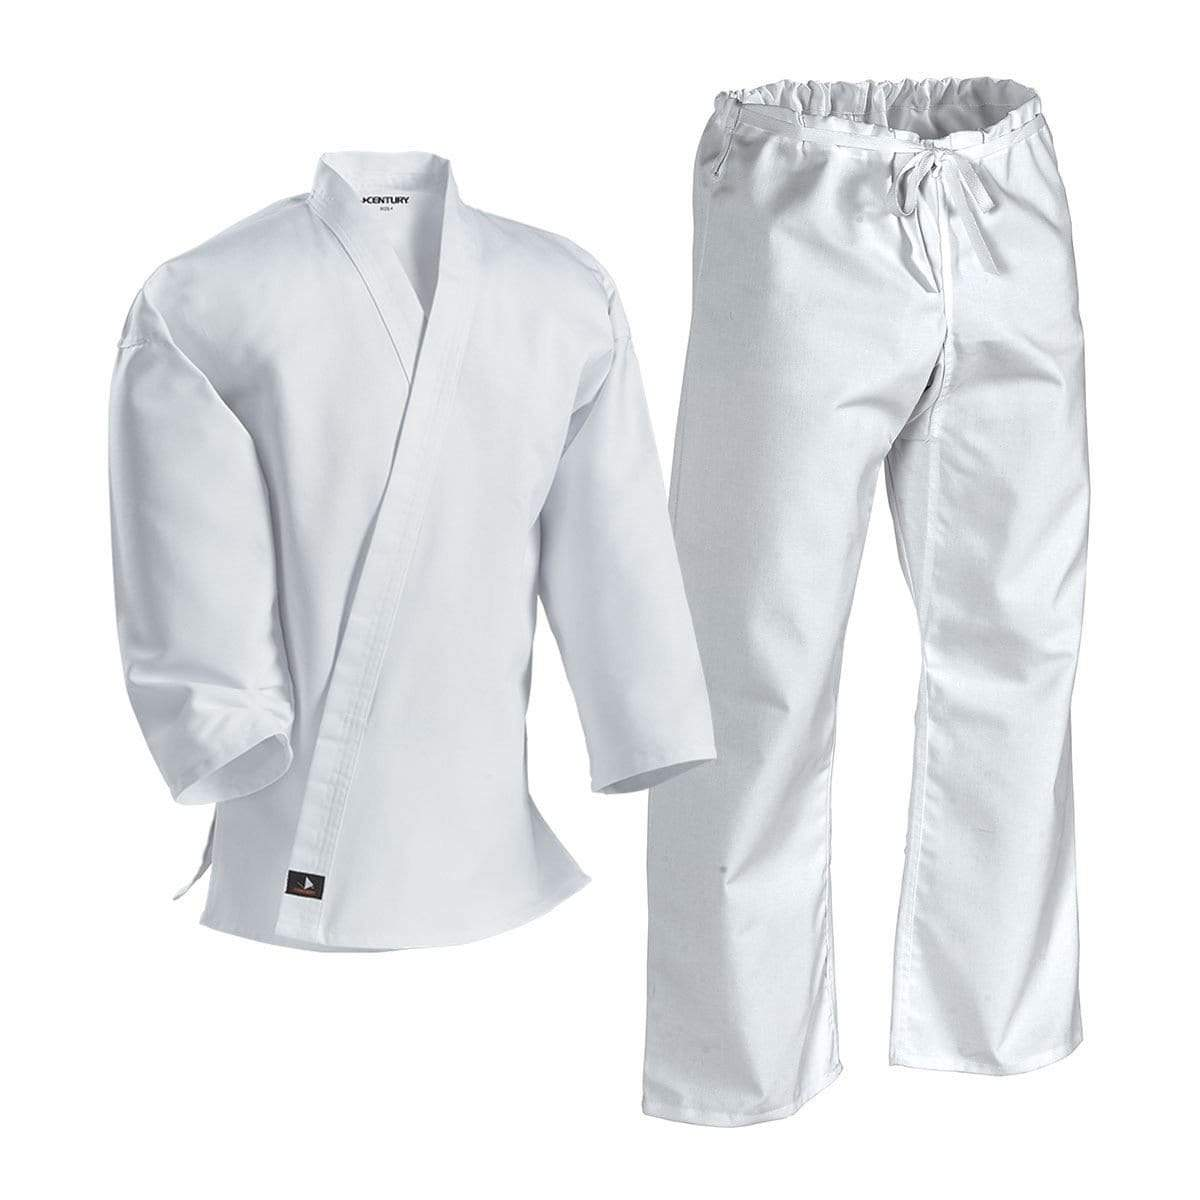 Century Complete Middleweight Drawstring  Waist Poly-Cotton Uniform Karate Martial Arts  white